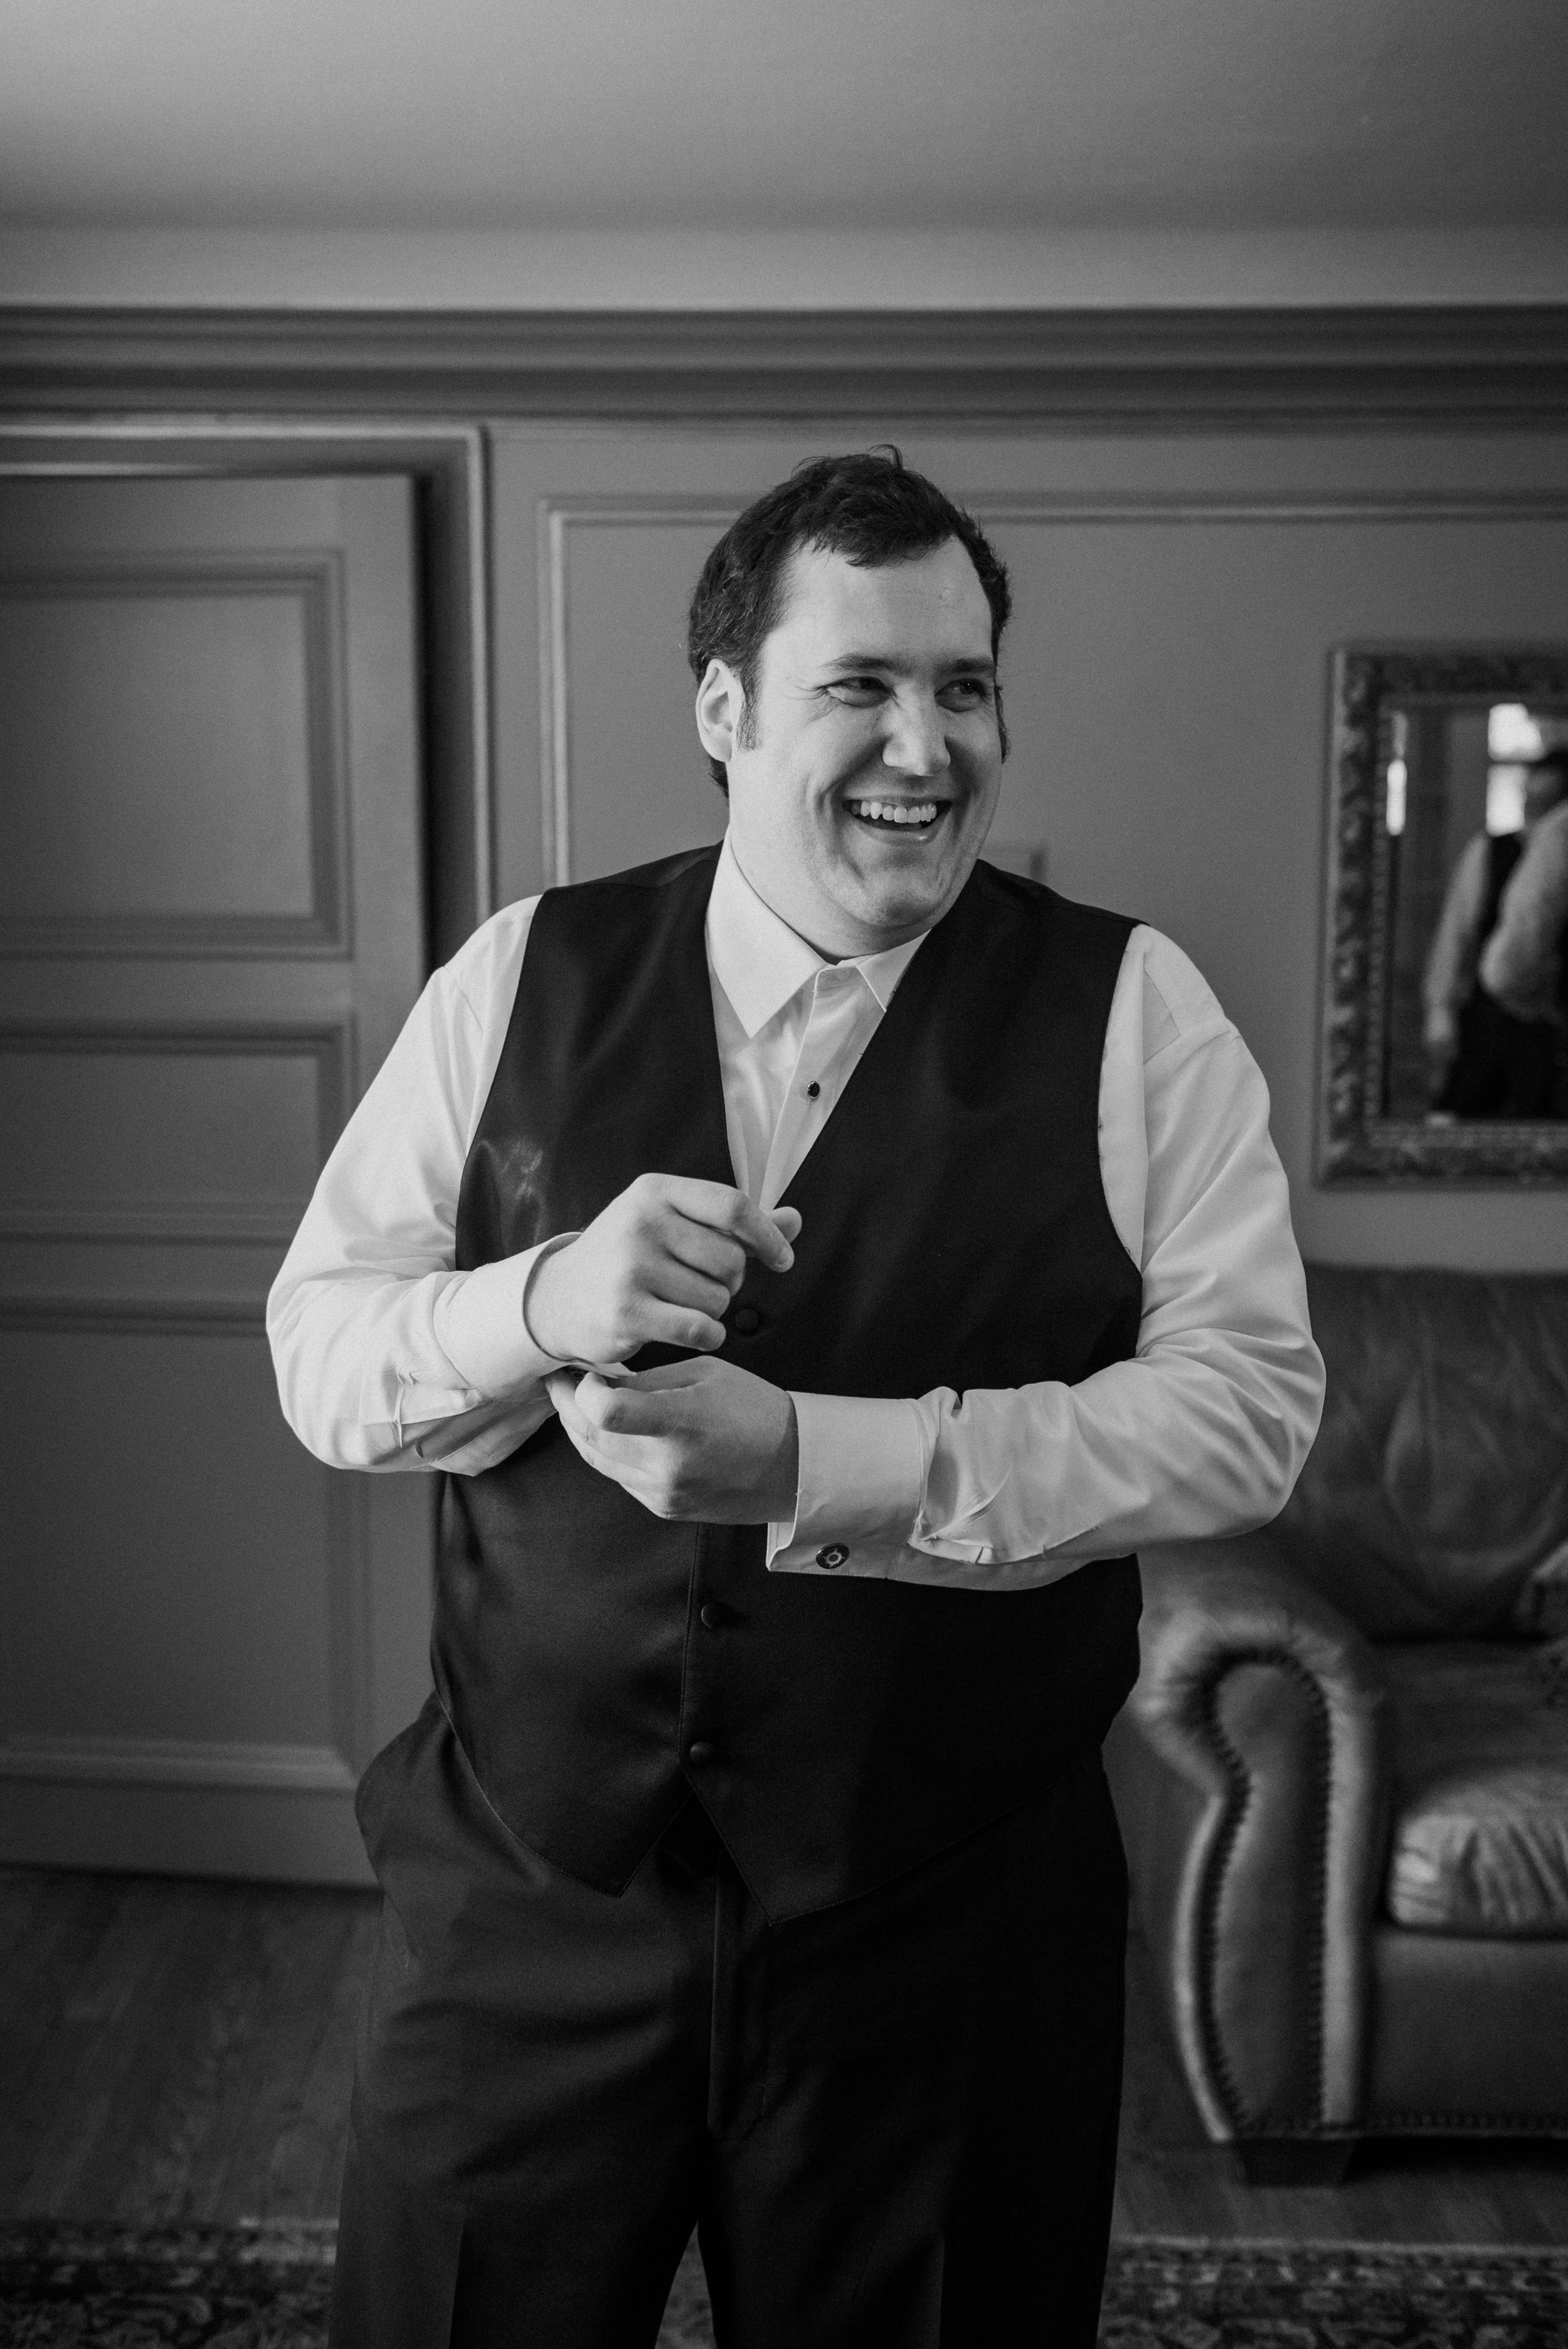 I've never had a groom as happy and giddy on wedding day as Patrick! I only met him a few times throughout planning but one the day of the wedding, his excitement was radiant!